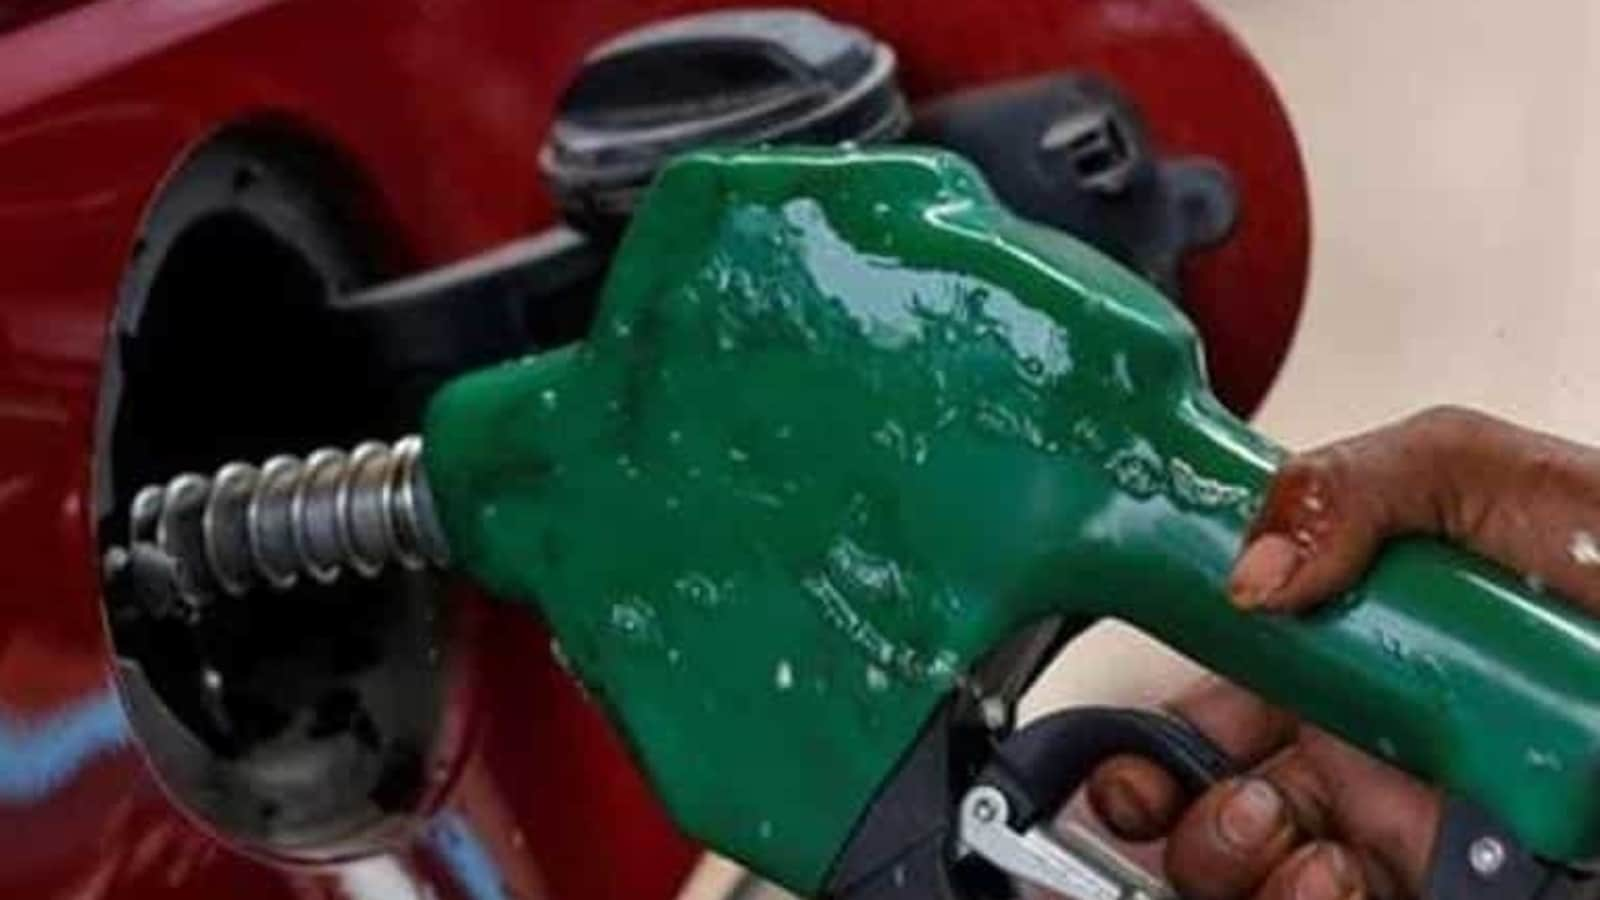 Fuel retailers may cut rates in run-up to polls - Hindustan Times